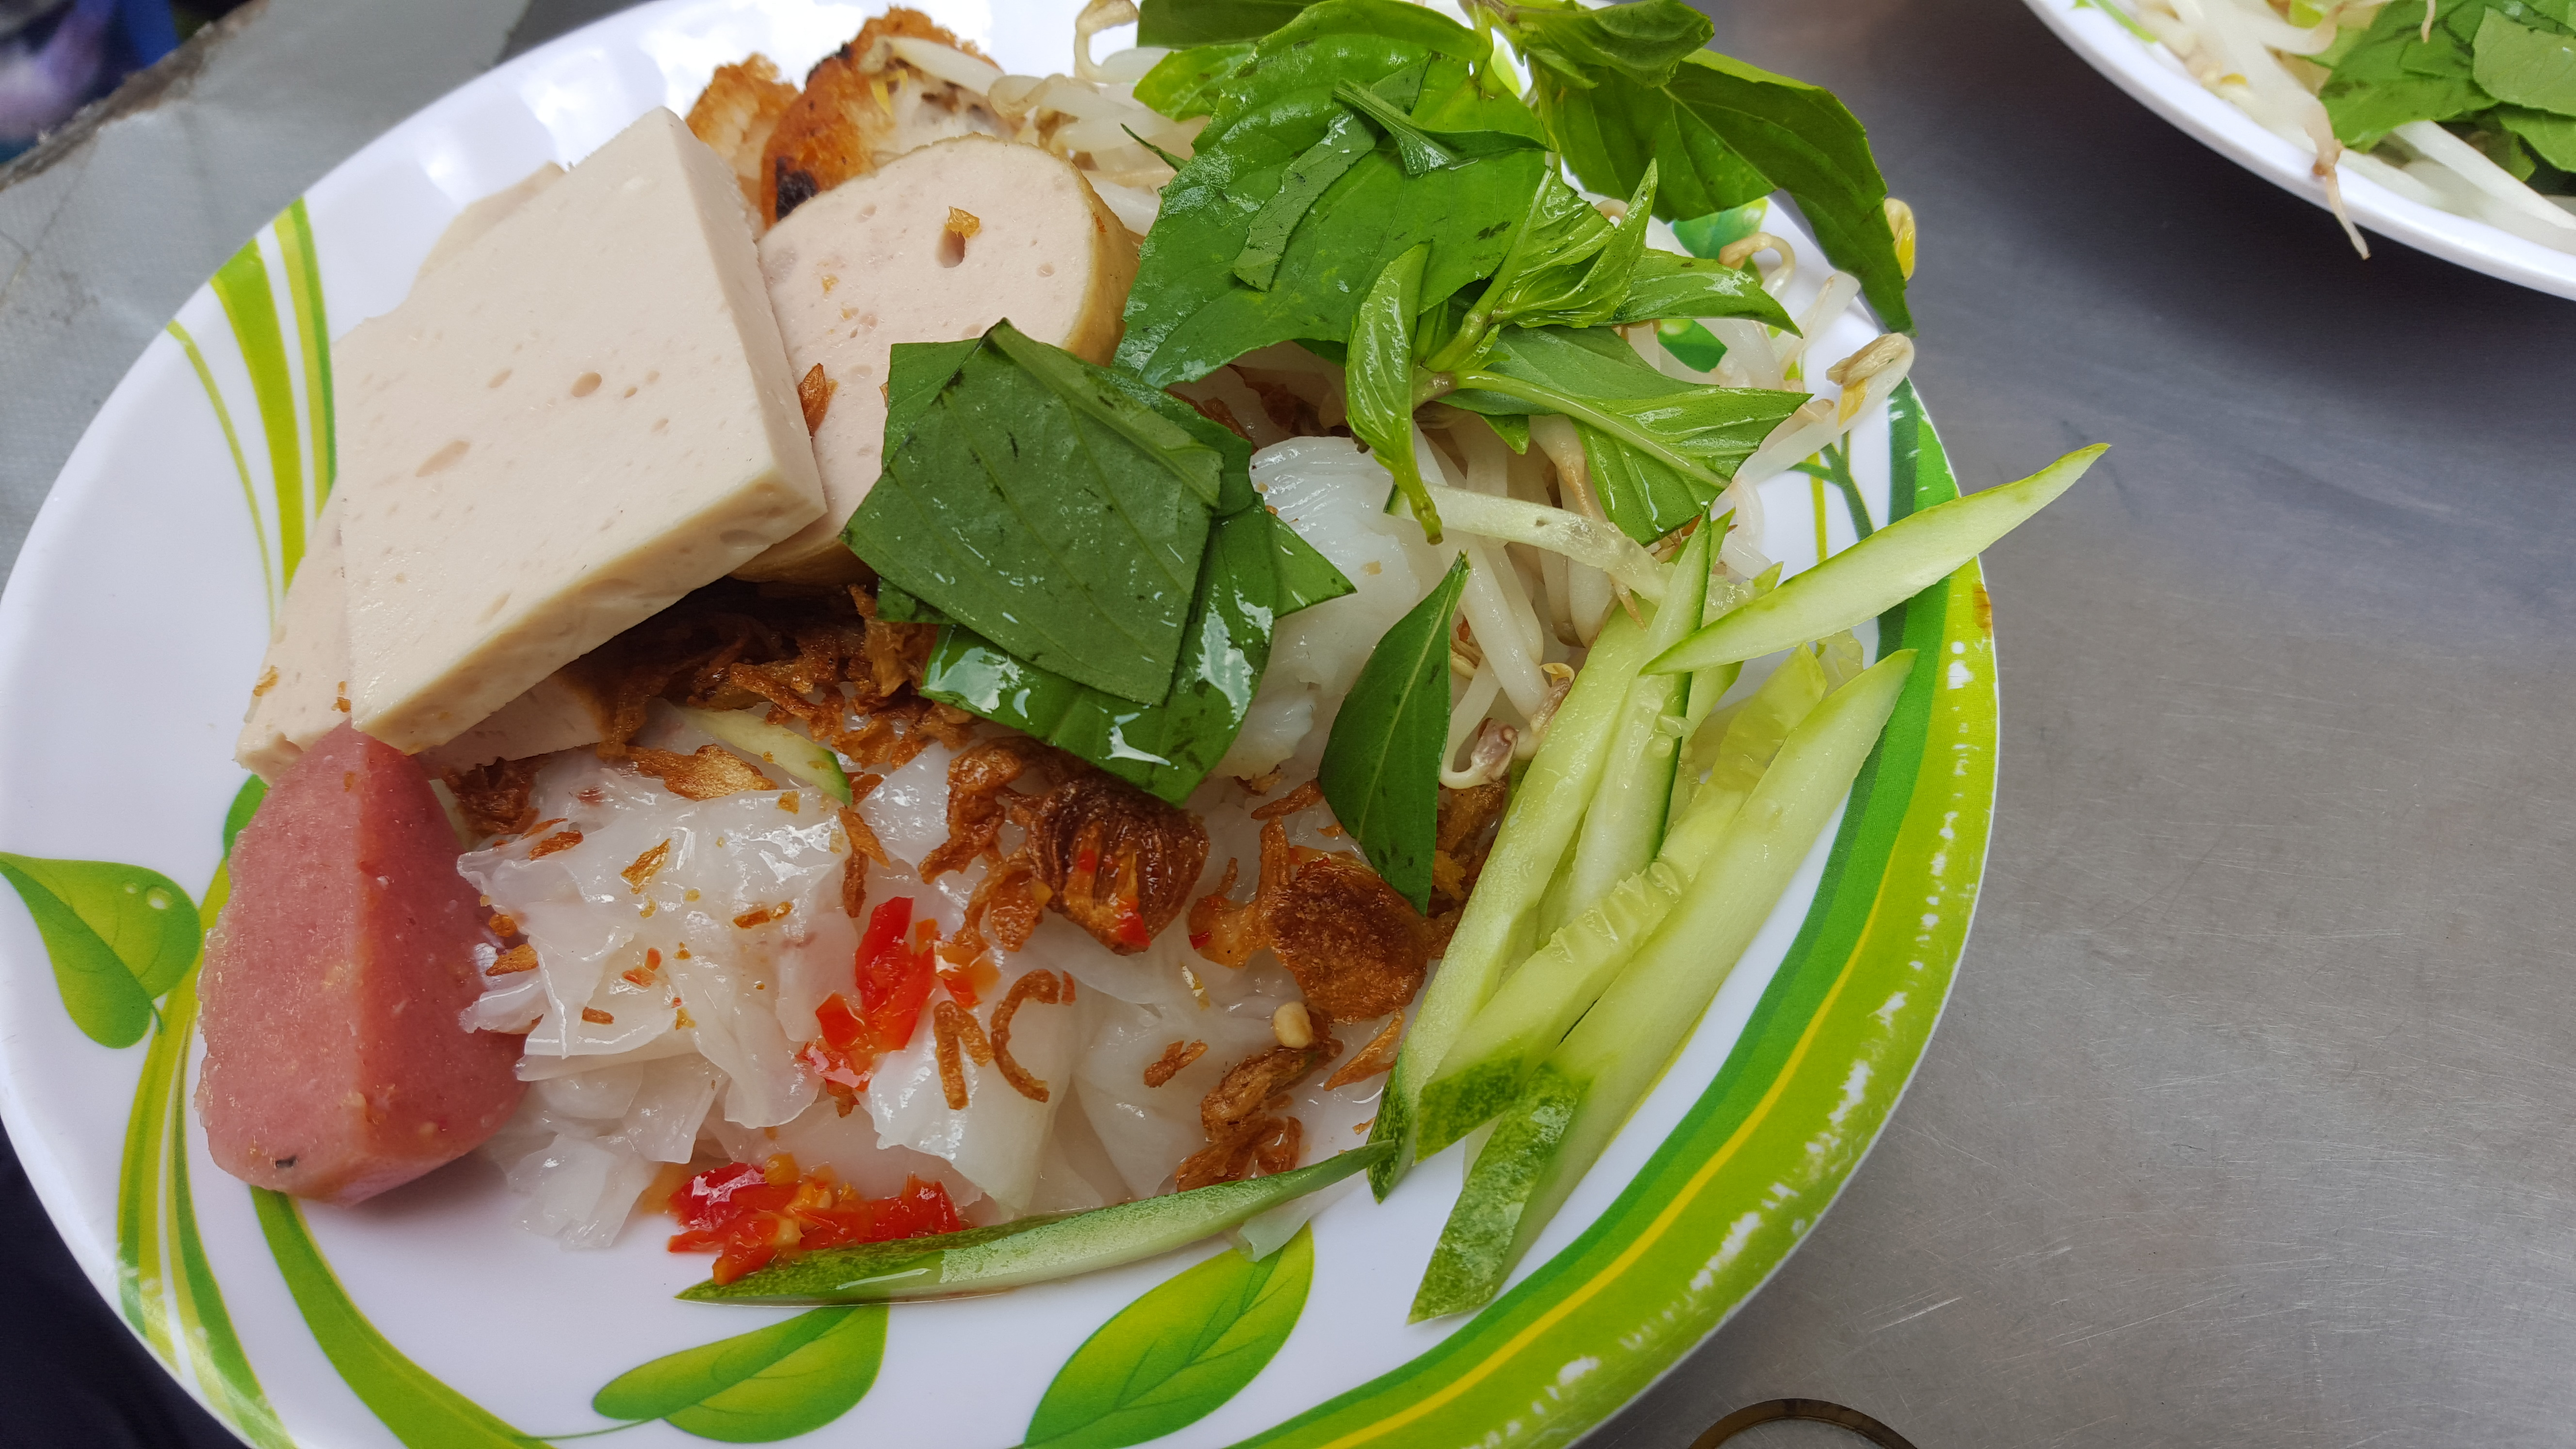 Exotic saigon street foods rice n flour woo i have always thought it was a simple dish until i listed all the ingredients just now forumfinder Gallery